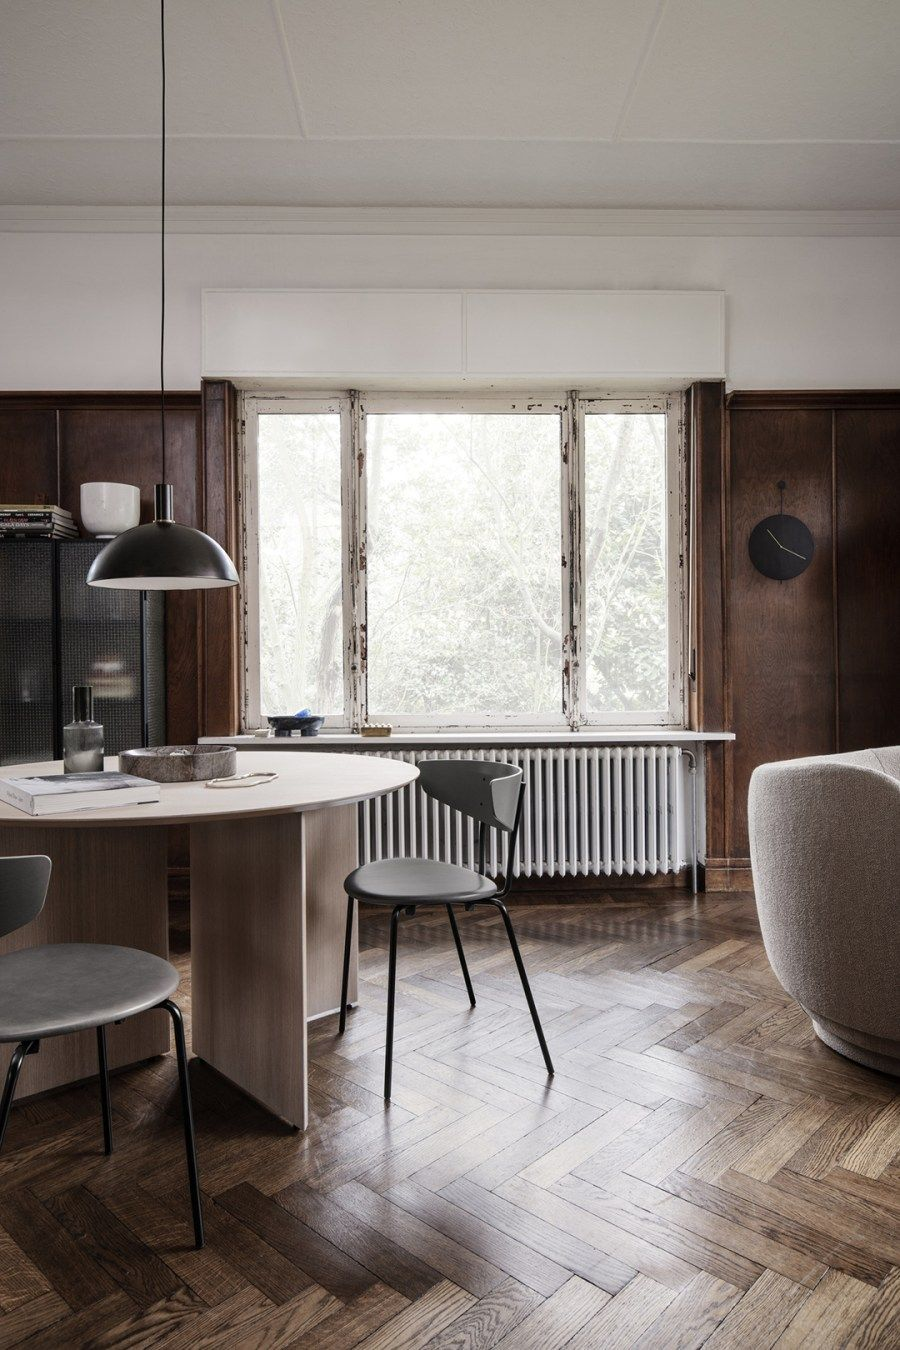 Ferm Living S Spring Summer 2019 Collection Explores The Meaning